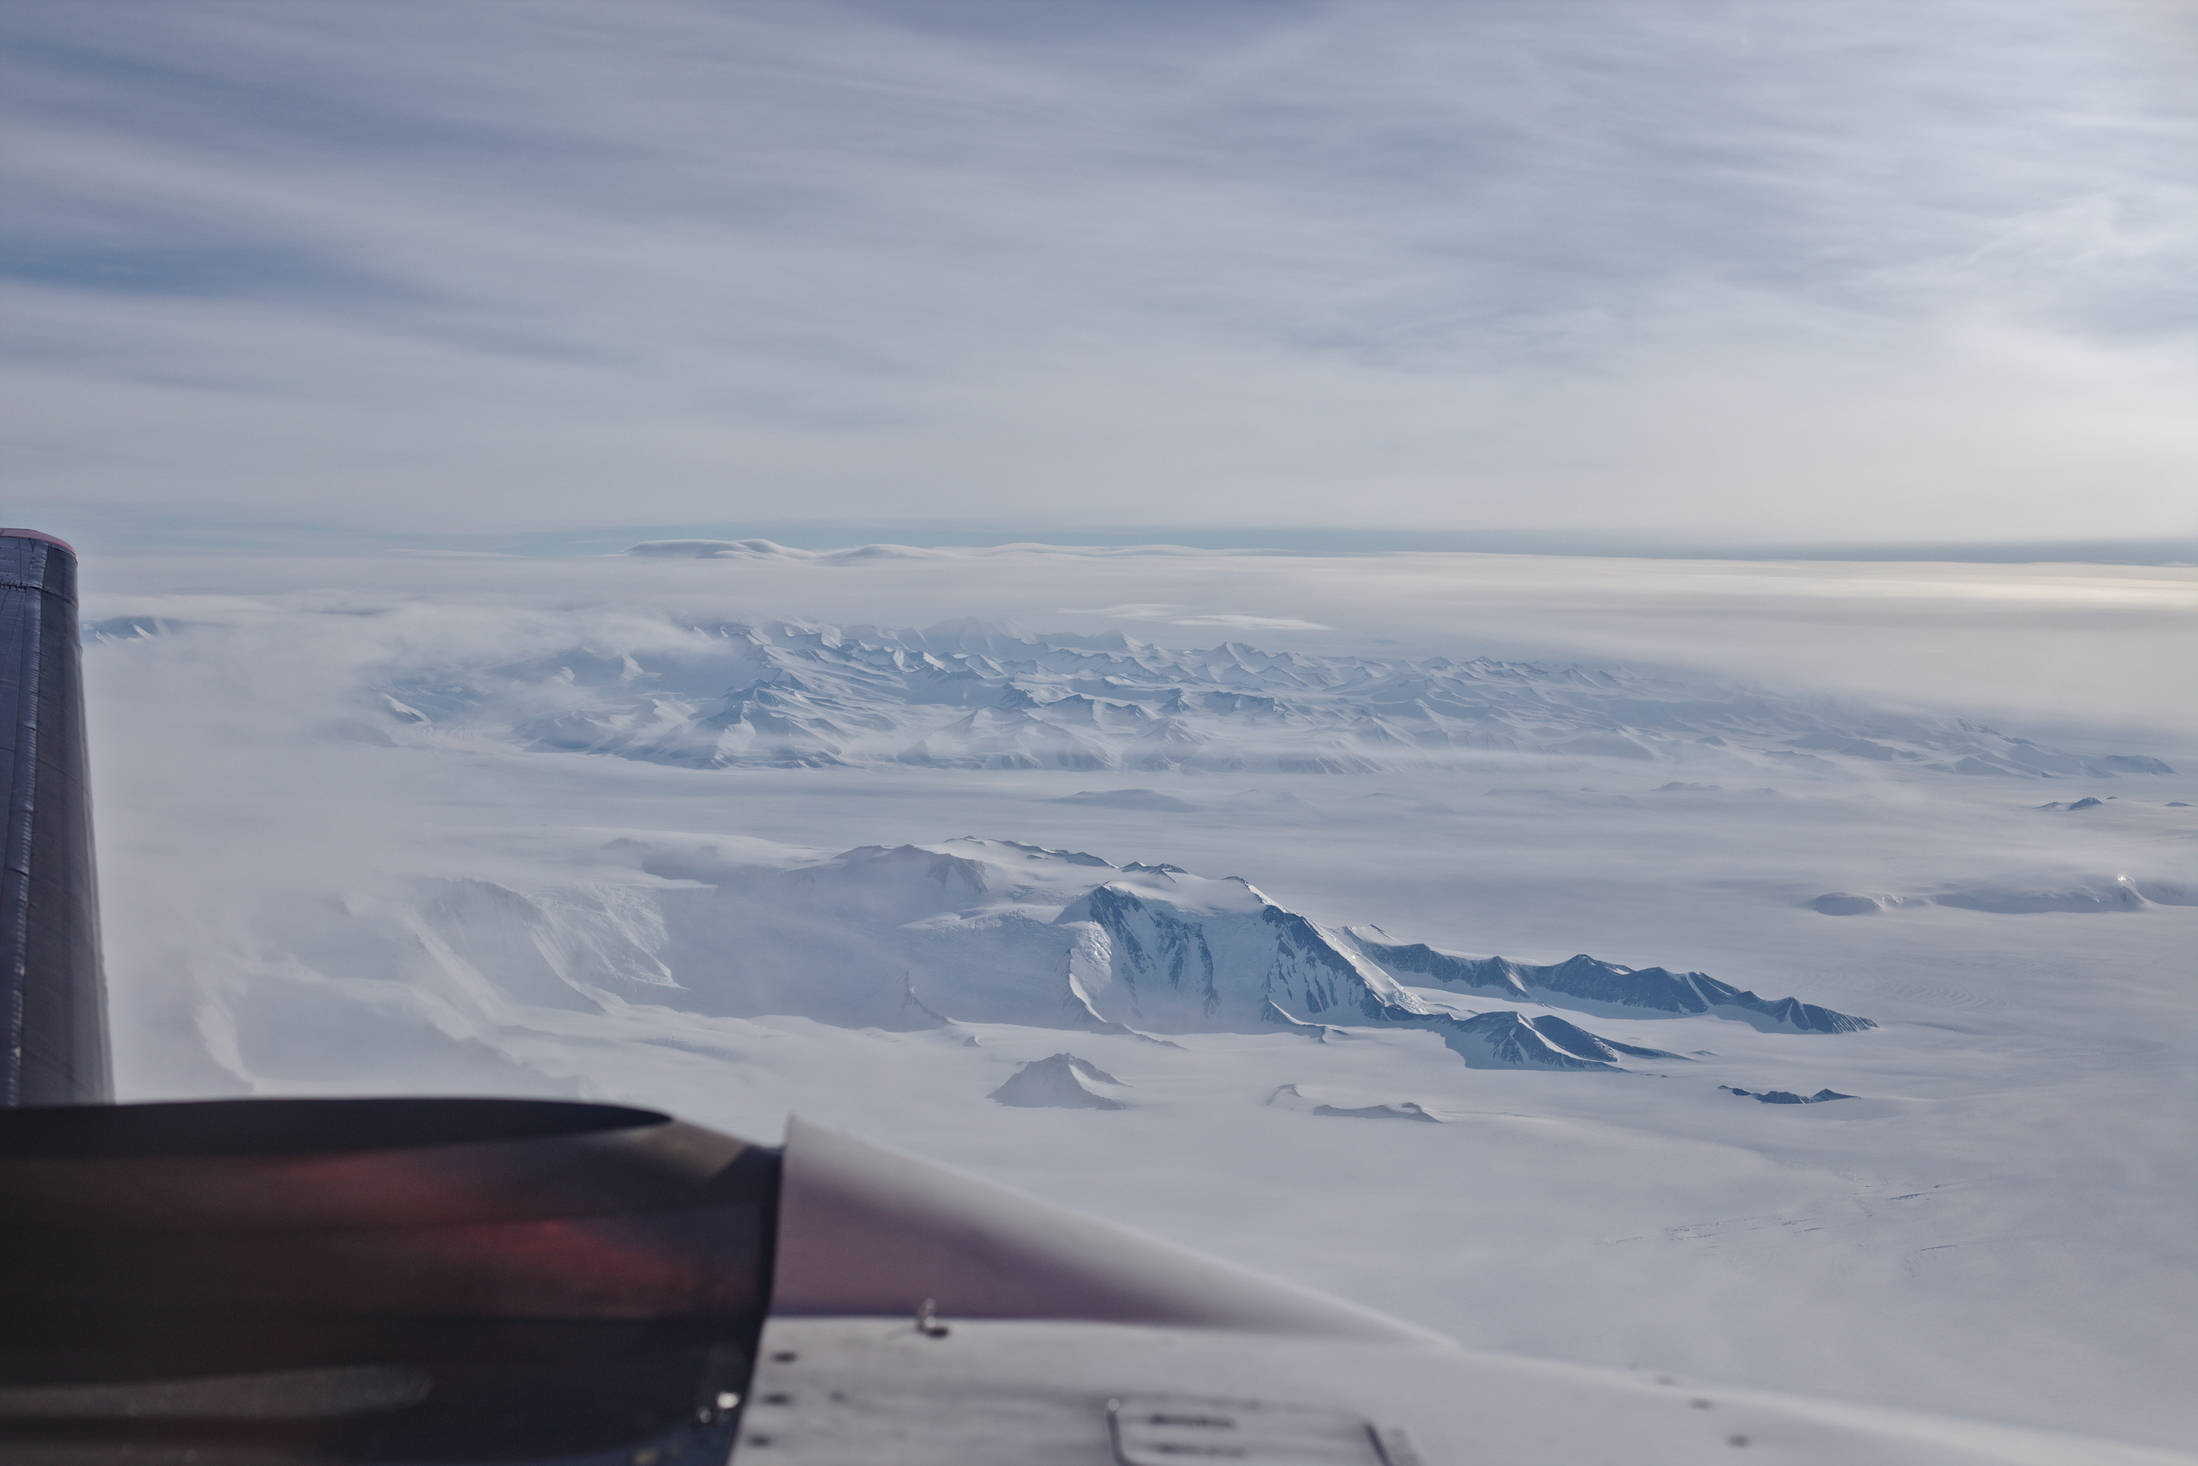 From here it's another two hours of flying across the Ross ice shelf. More mountains are visible along the way